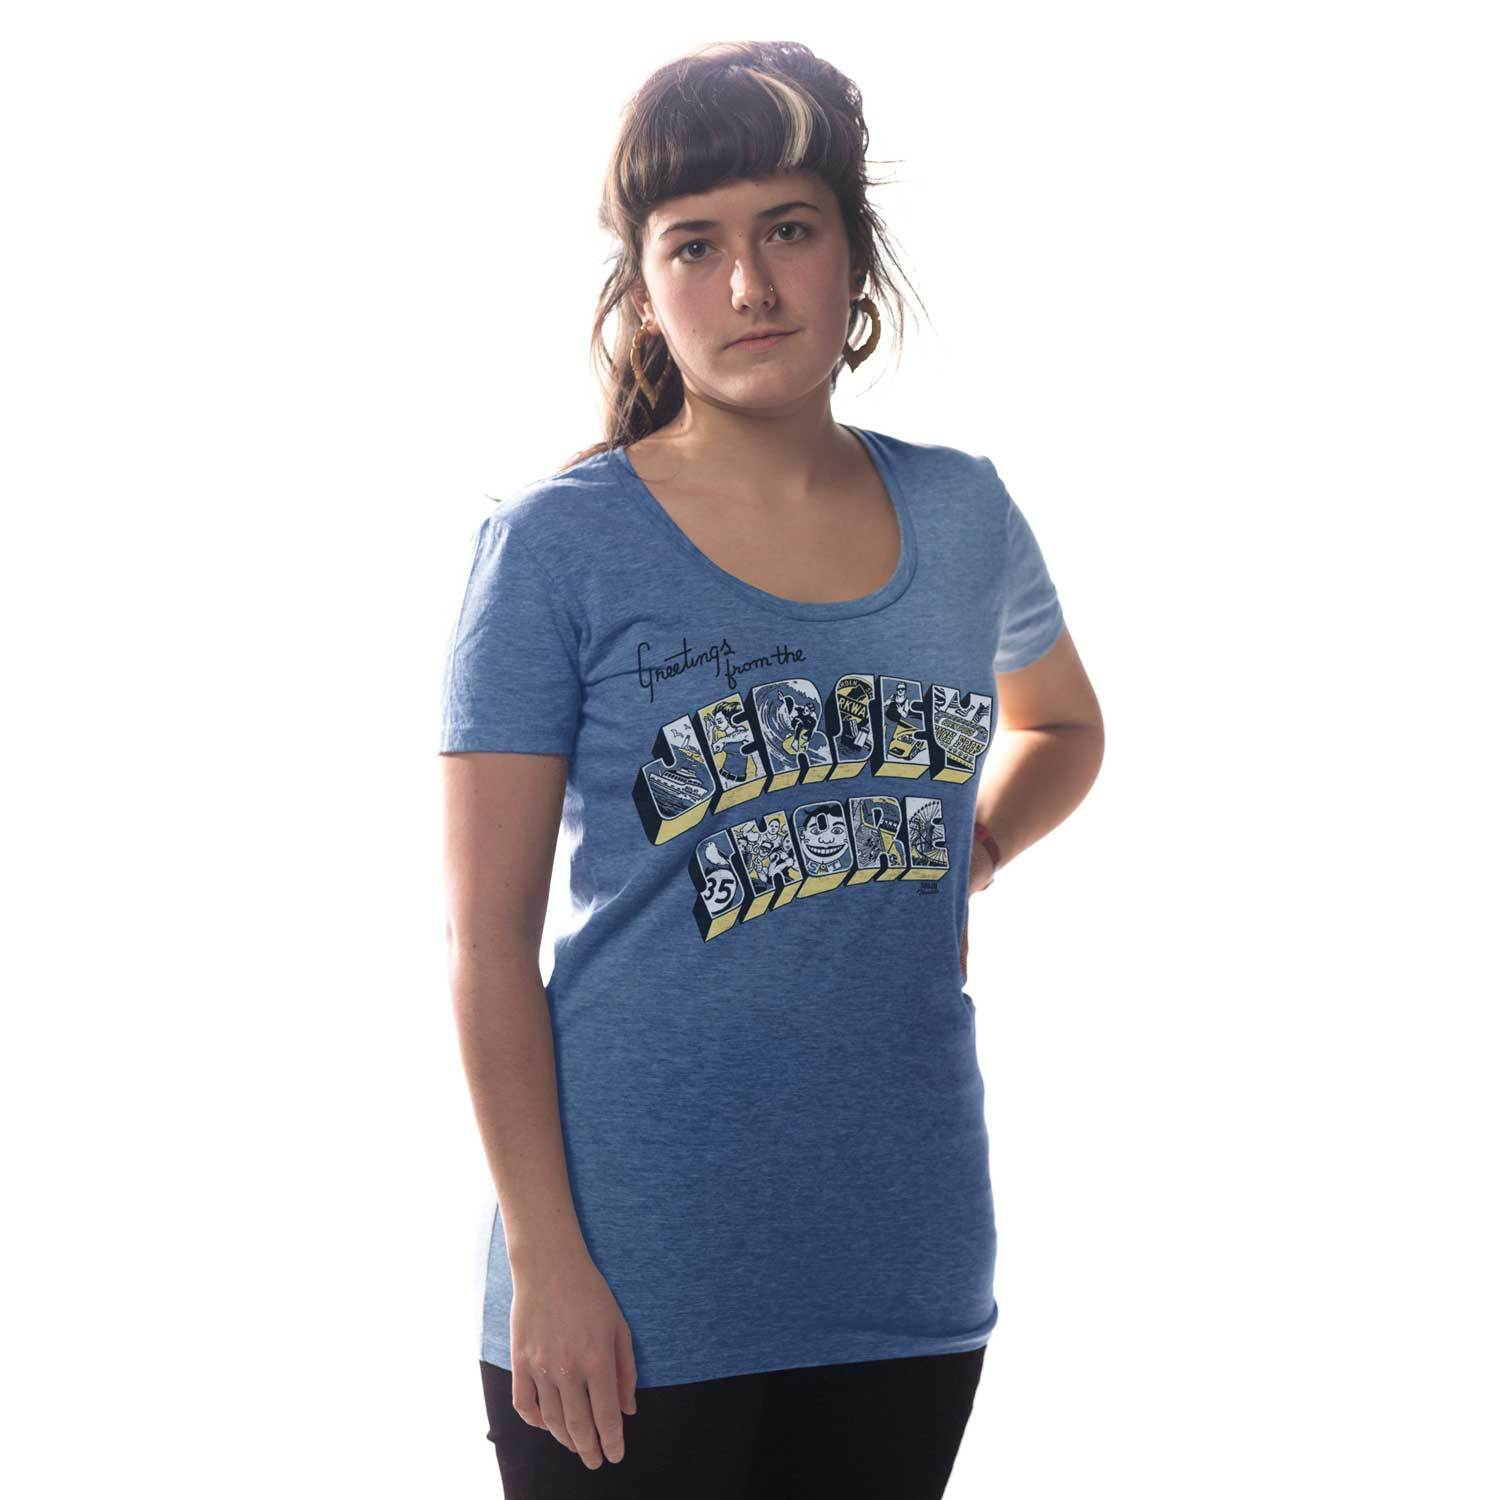 Women's Greetings from the Jersey Shore Vintage Inspired Scoopneck tee-shirt with funny, New Jersey graphic | Solid Threads